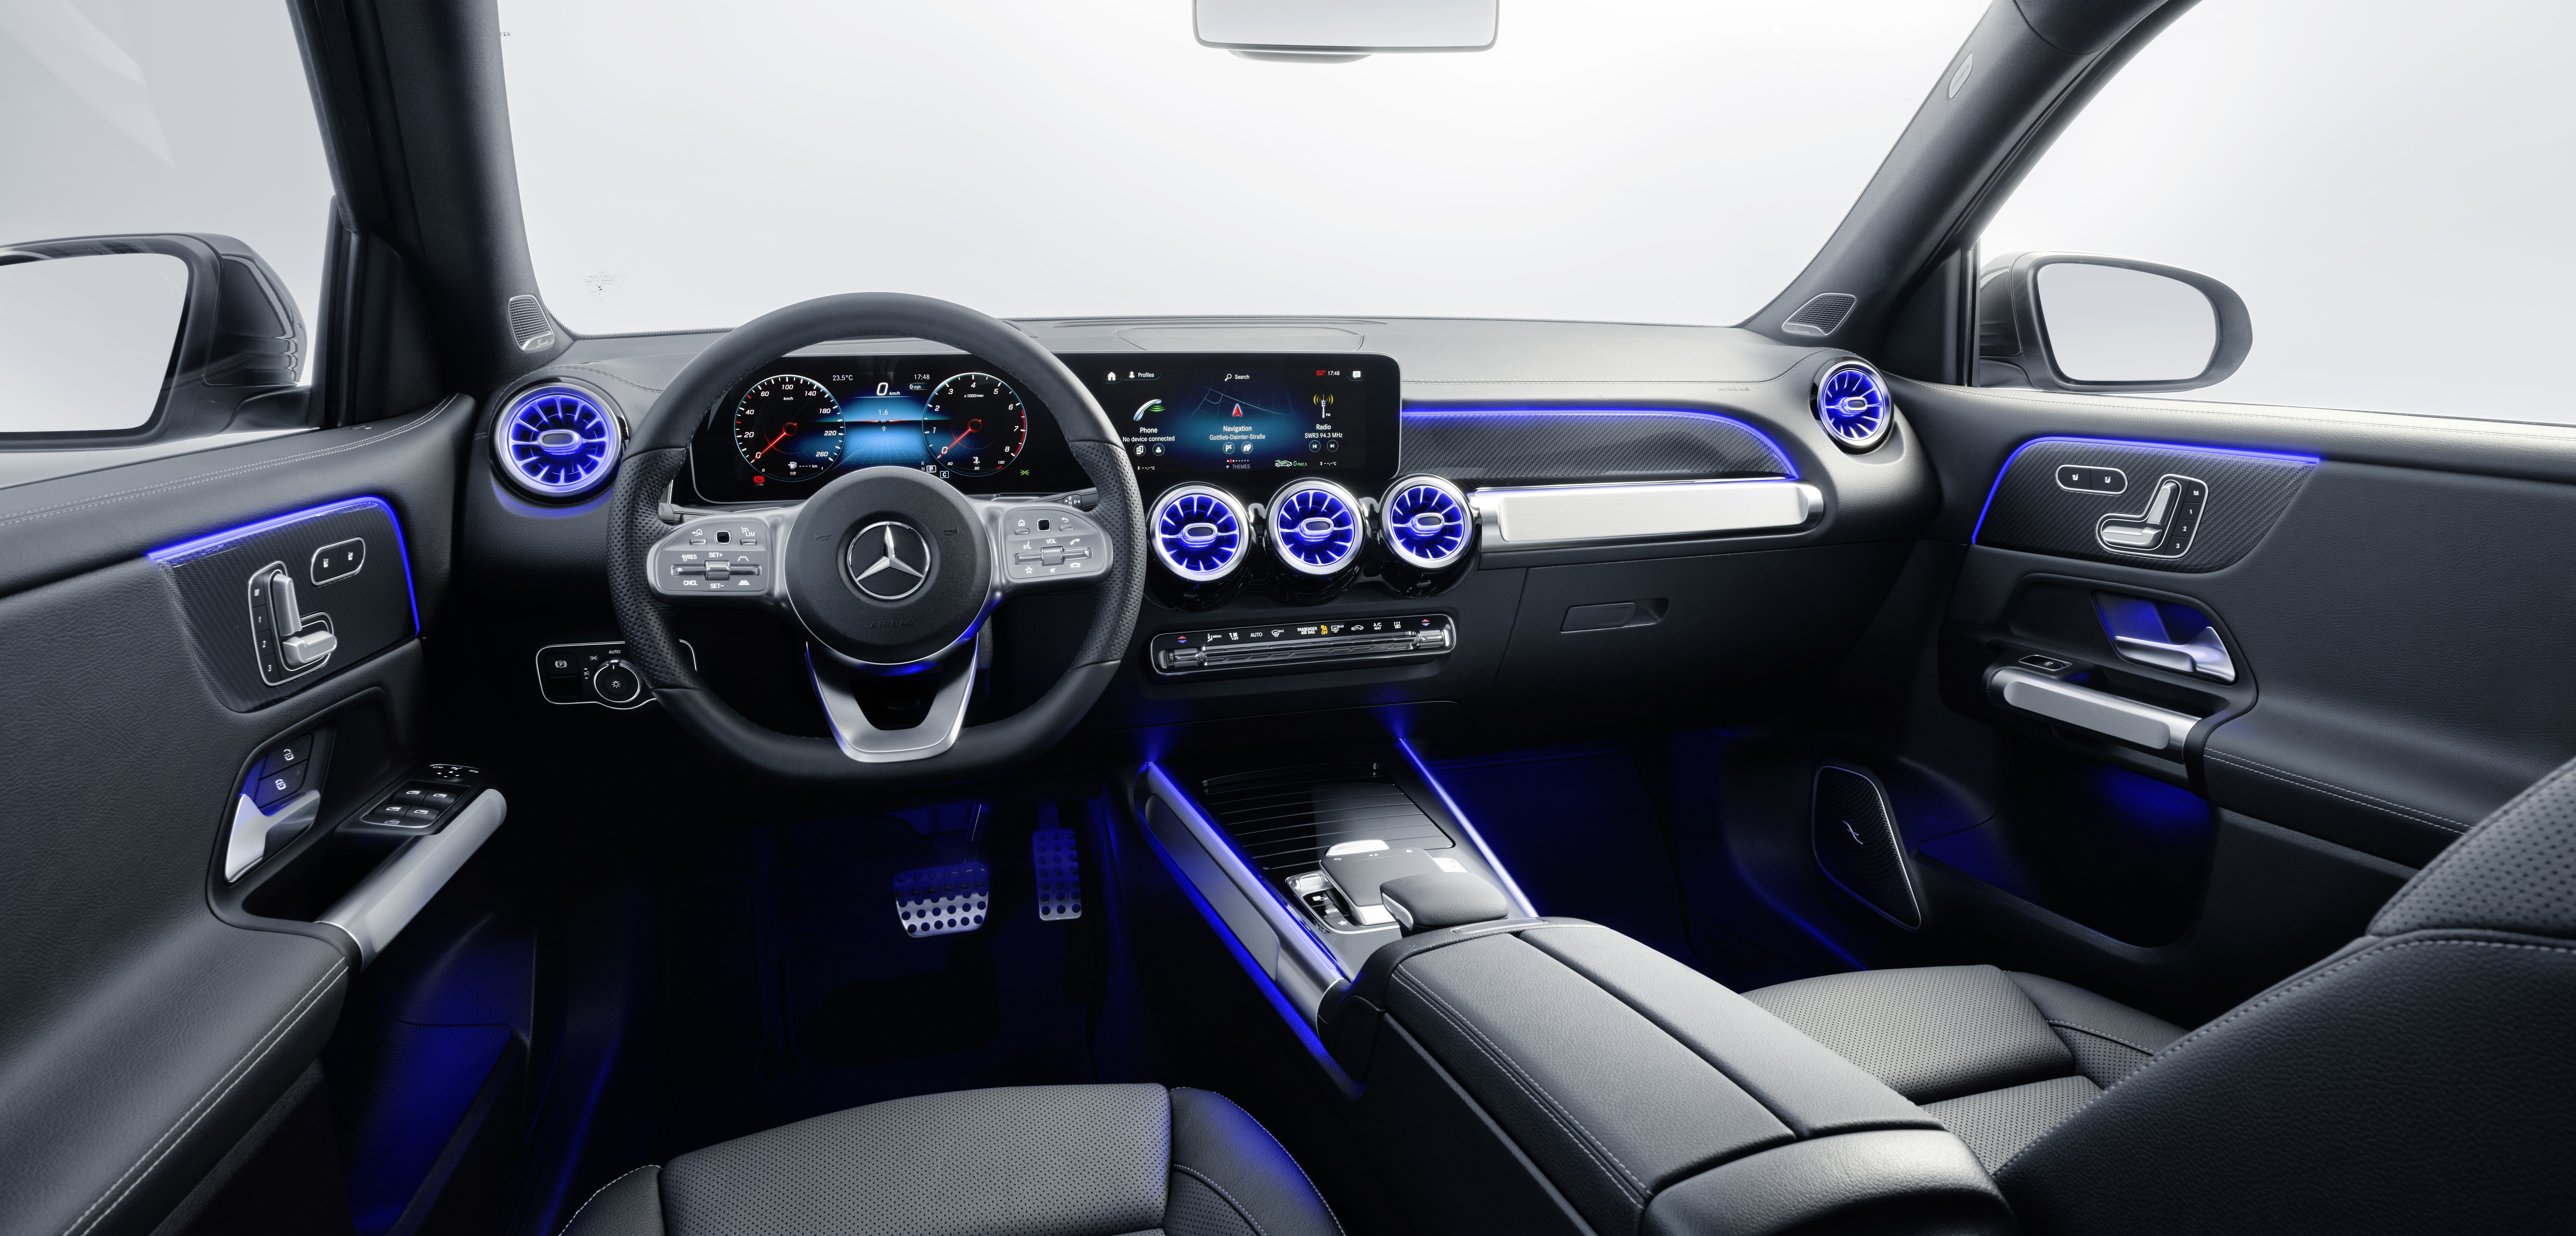 Mercedes-Benz GLB, Interieur, Leder Titangrau   Mercedes-Benz GLB, interior, leather titan grey